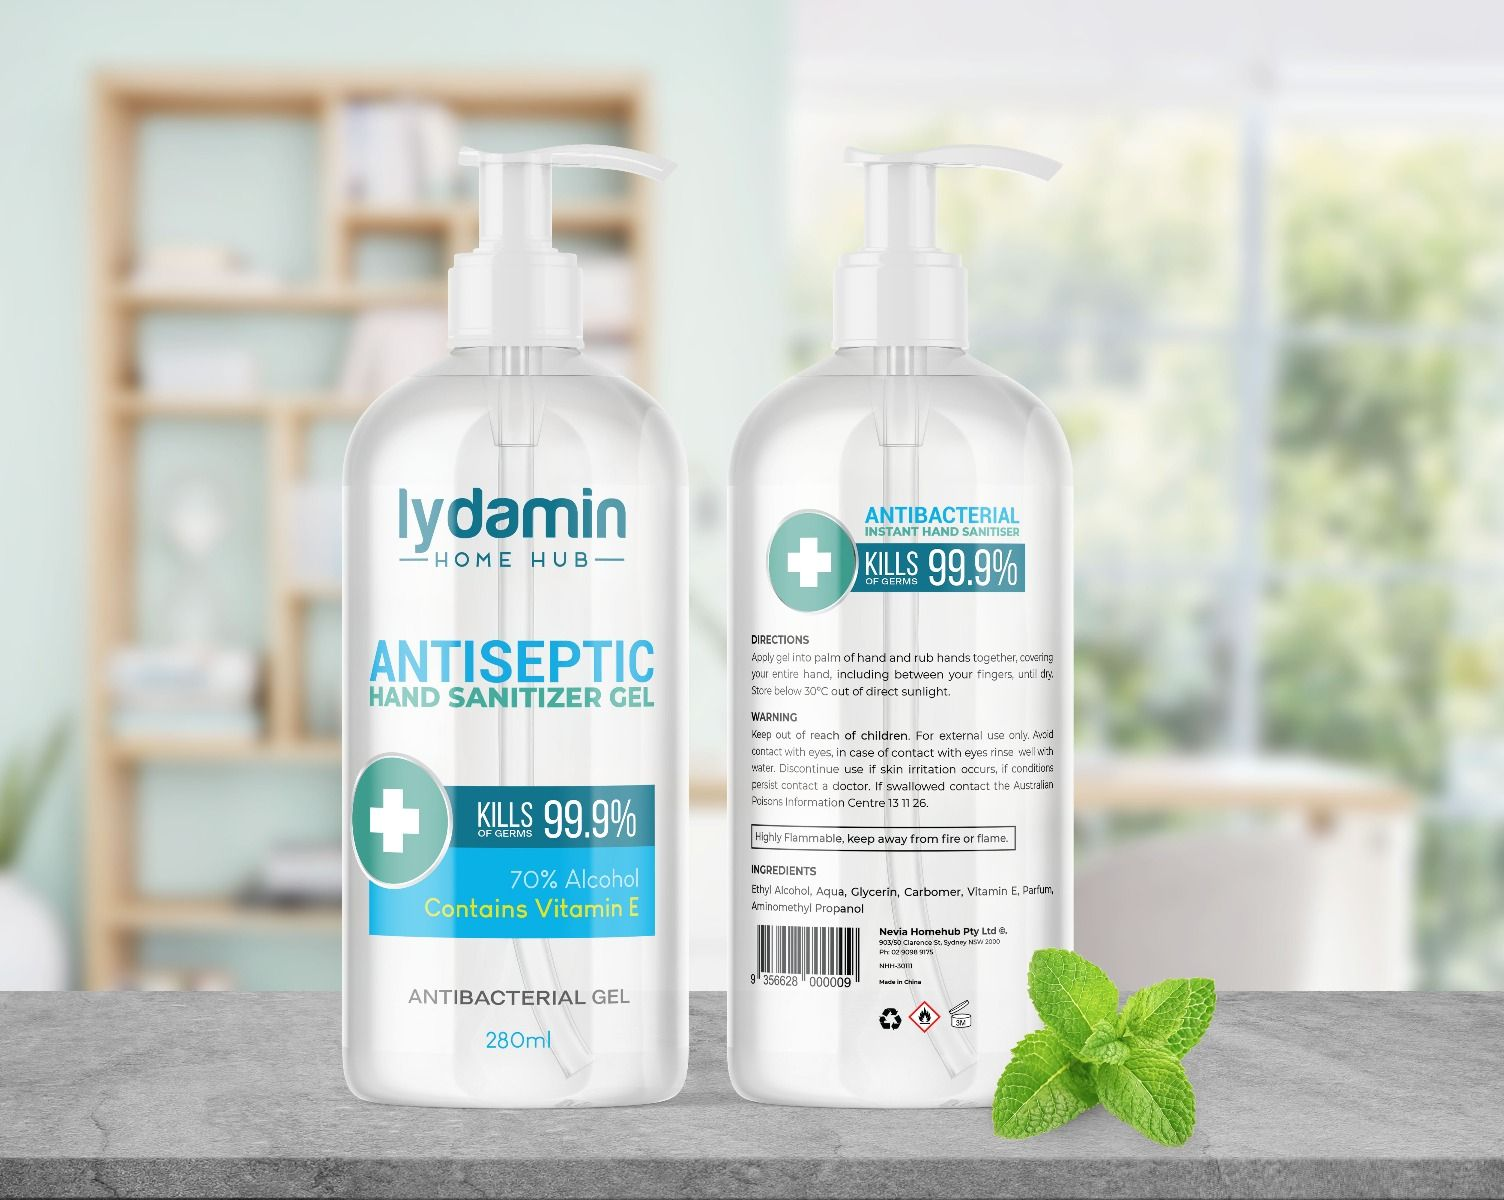 48 x 280ml lydamin® Antiseptic Hand Sanitiser gel